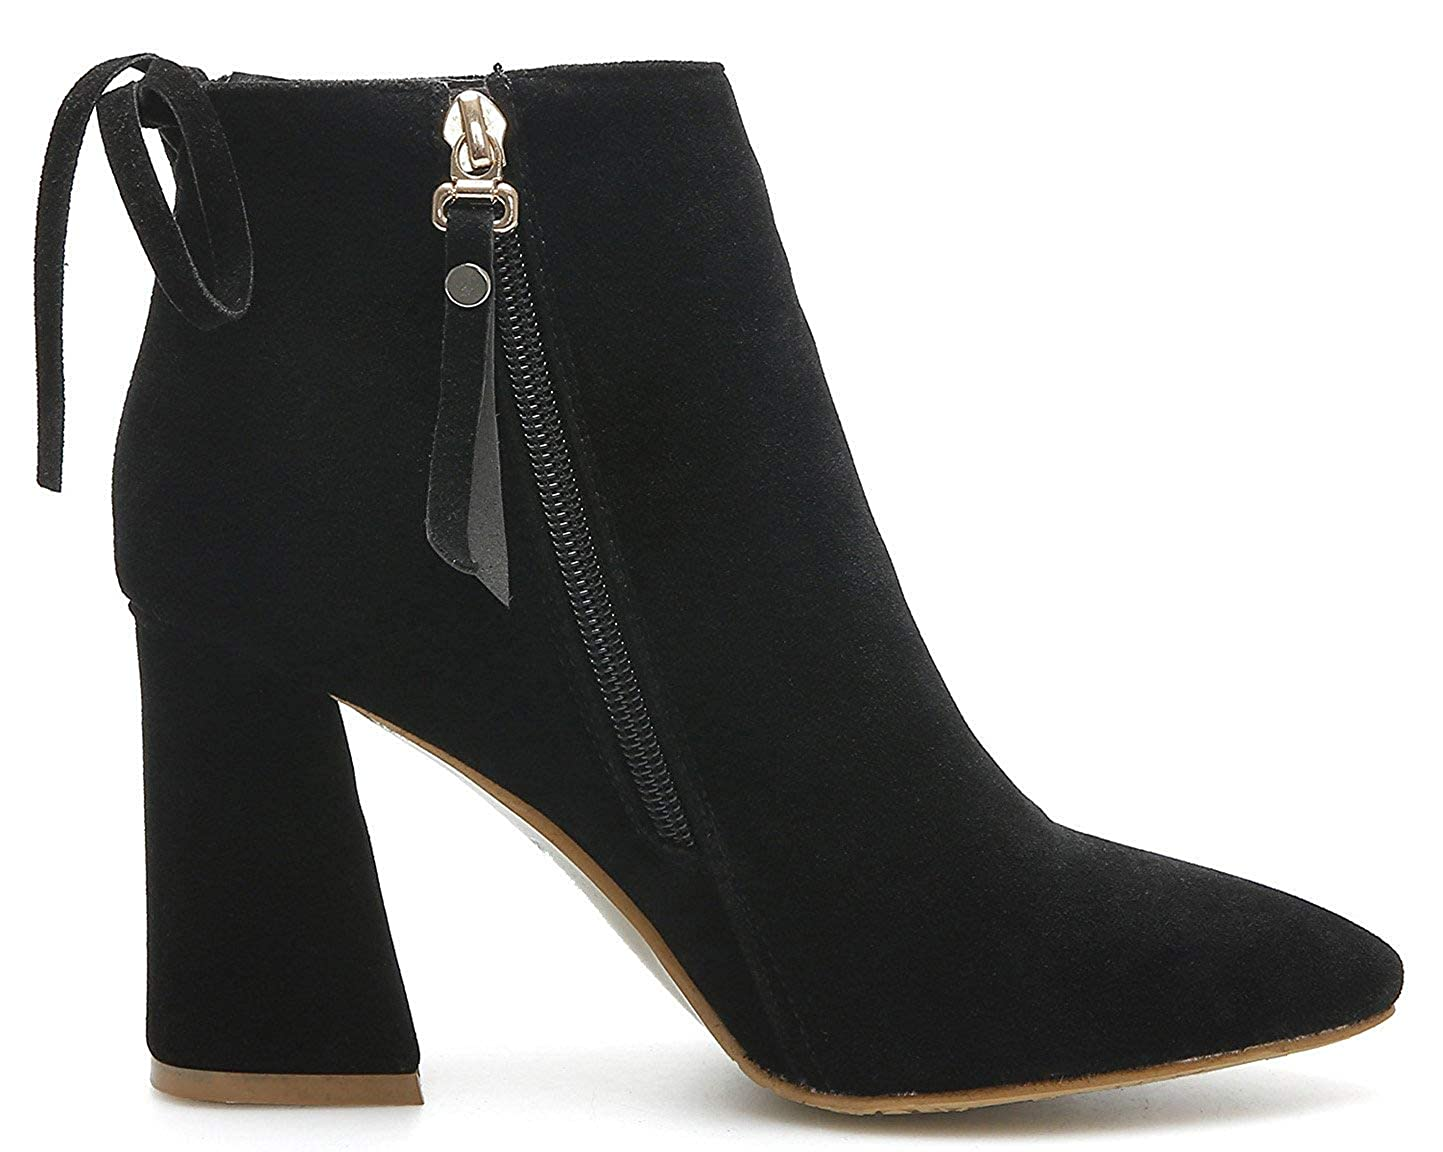 Unm Womens High Heel Short Boots with Zipper Elegant Chunky Dressy Pointed Toe Ankle Booties